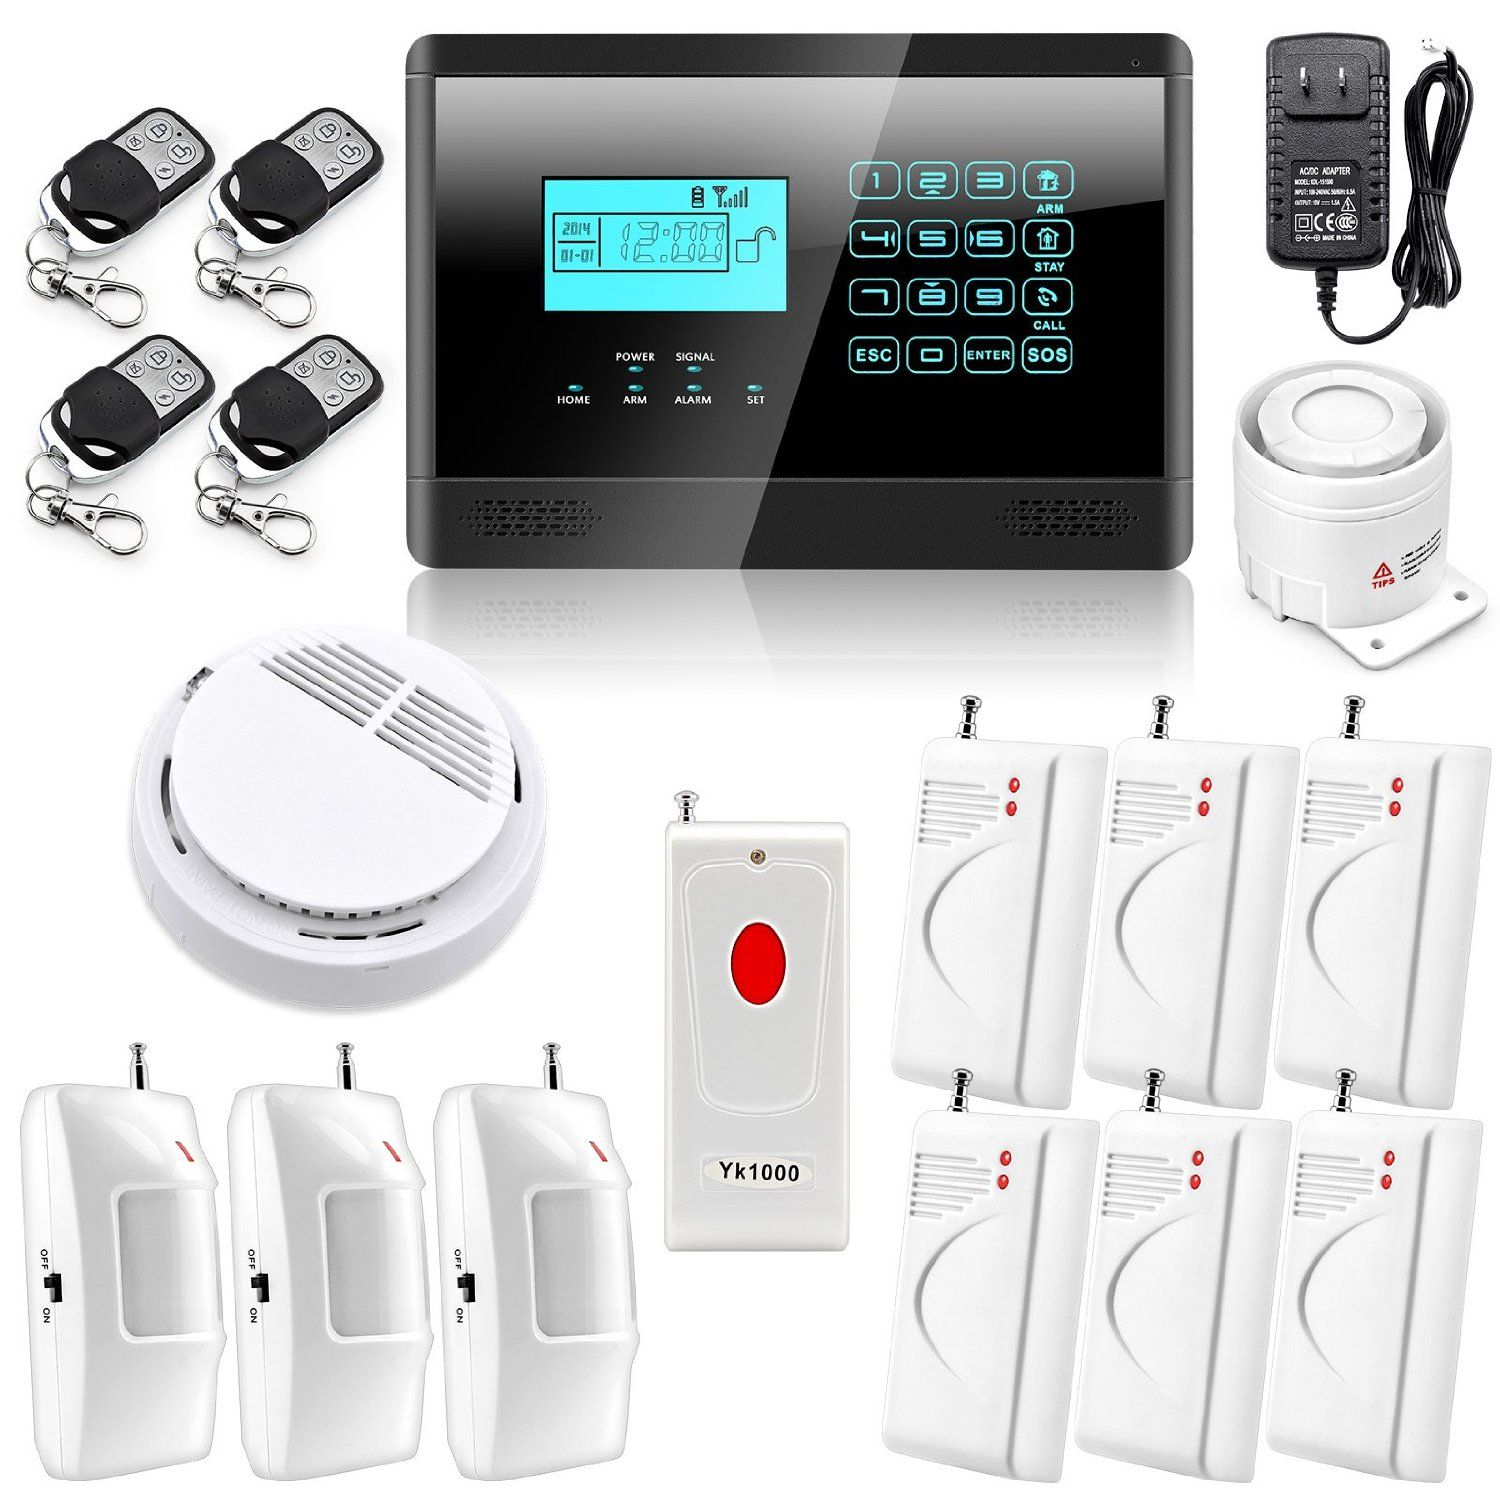 Gcc Home Security Systems Market Projected To Exceed Us 470 Million By 2023 Imarc Group Alarm Systems For Home Diy Home Security Home Security Systems